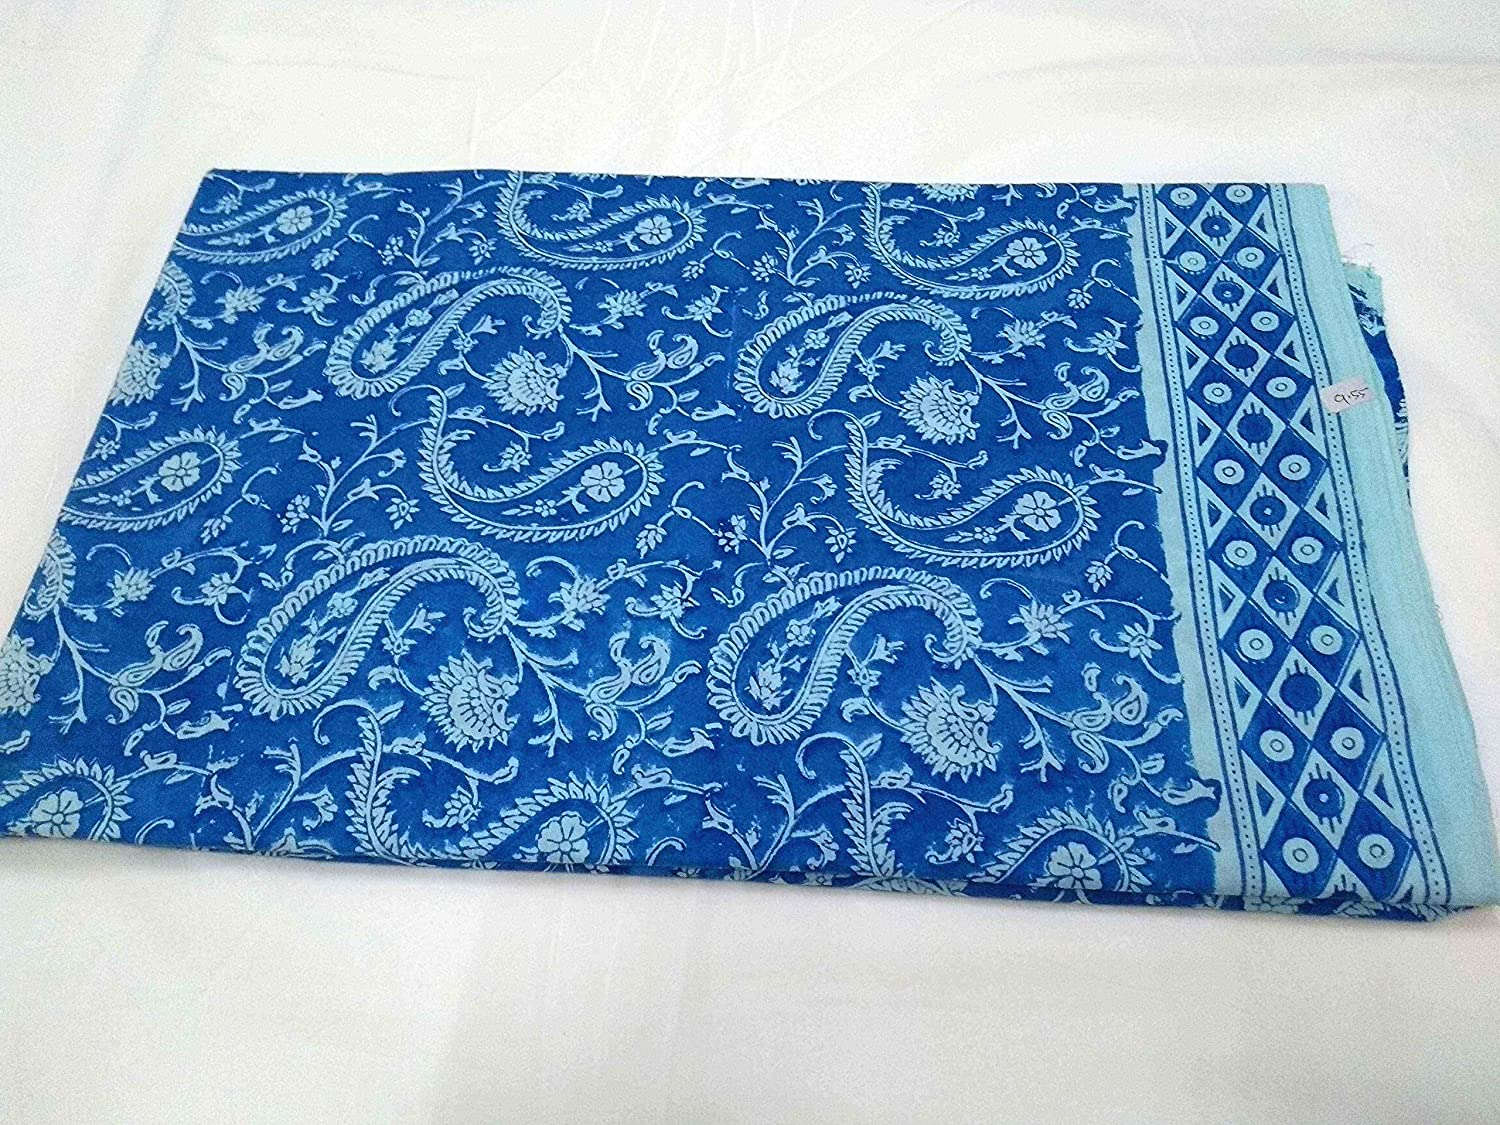 5 Yard Indian Running Sewing Cotton Fabric Flower Hand Block Blue color Handmade